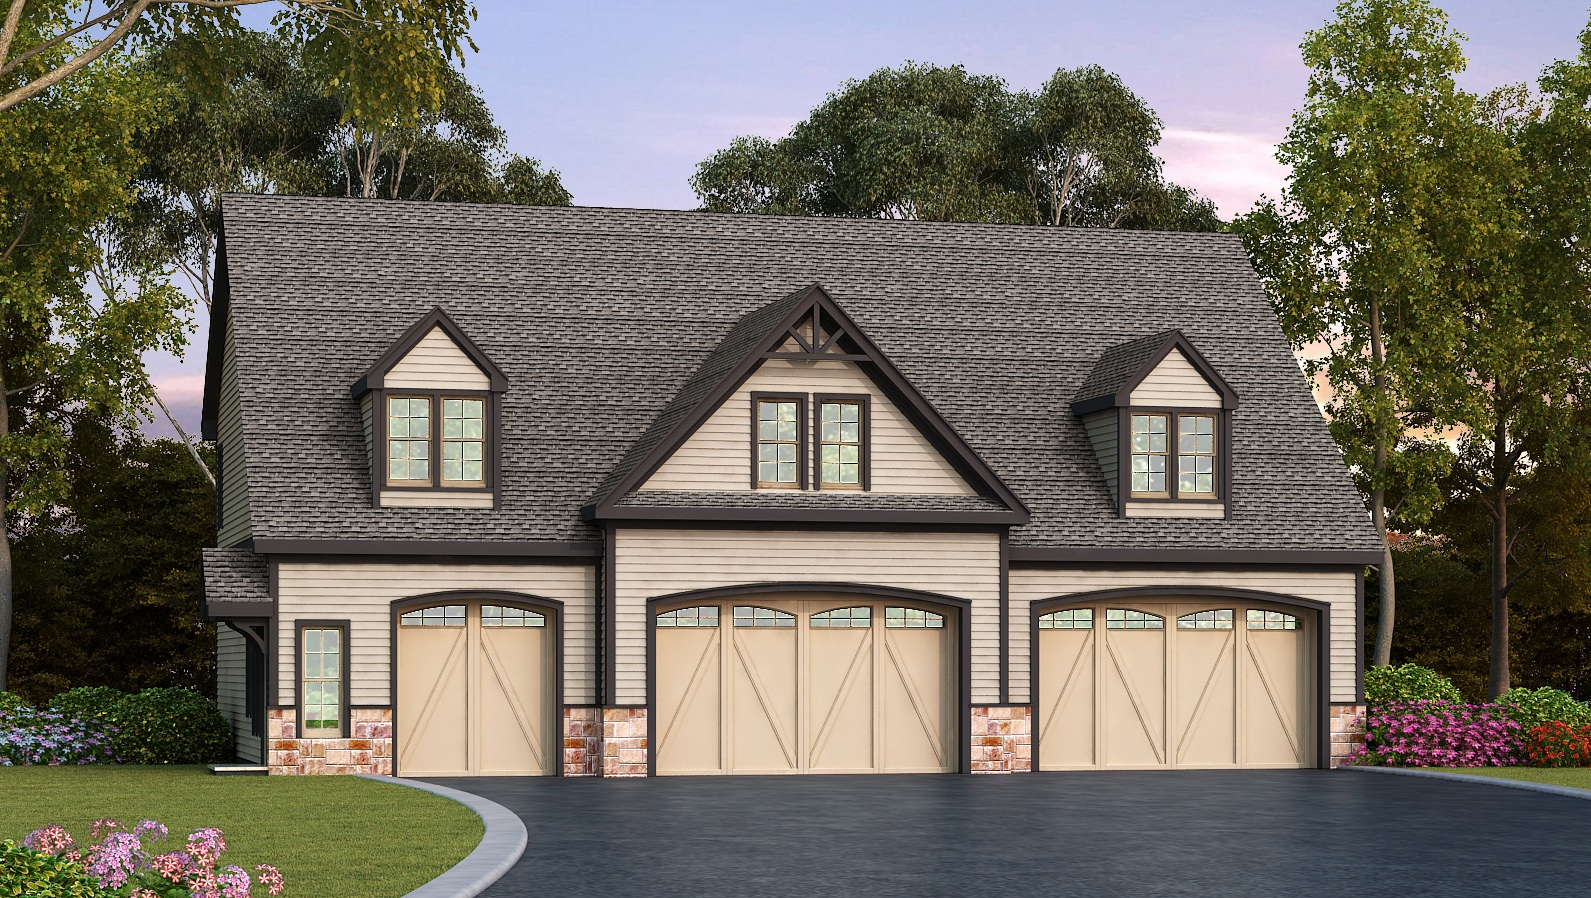 Residential 5 car garage plan 29870rl architectural for Large garage plans